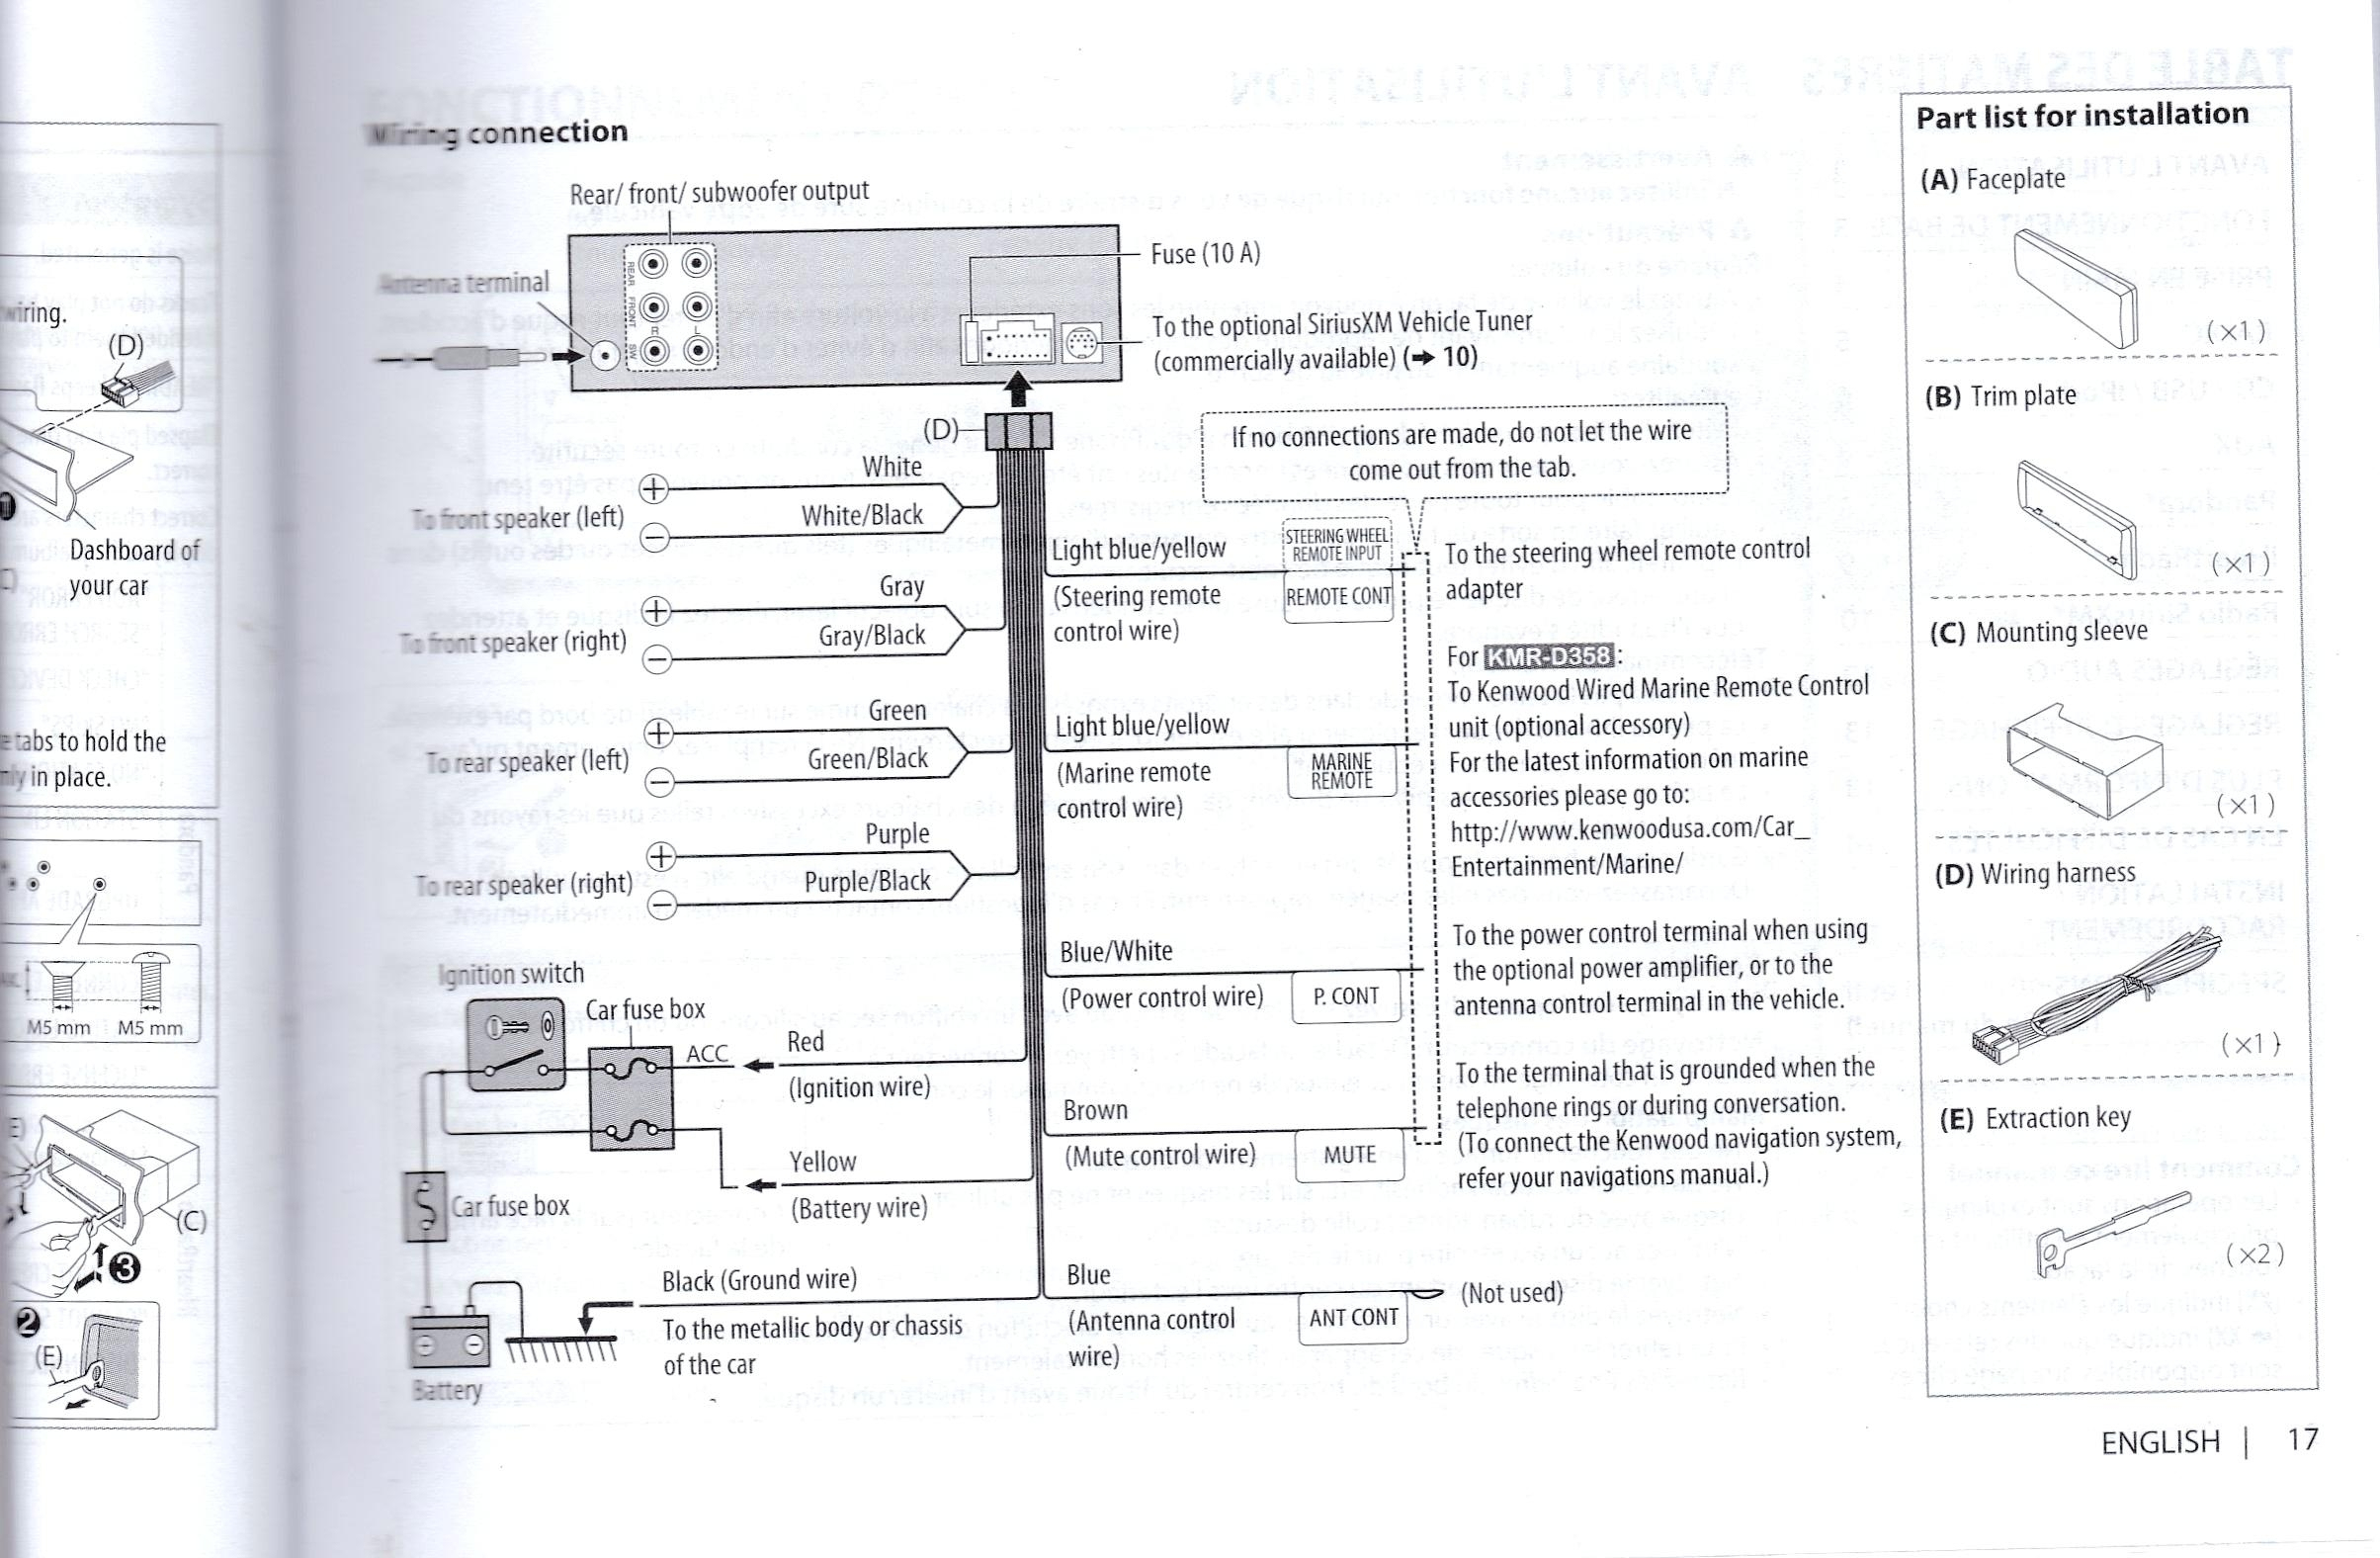 Kenwood Radio Wiring Diagram from 2020cadillac.com